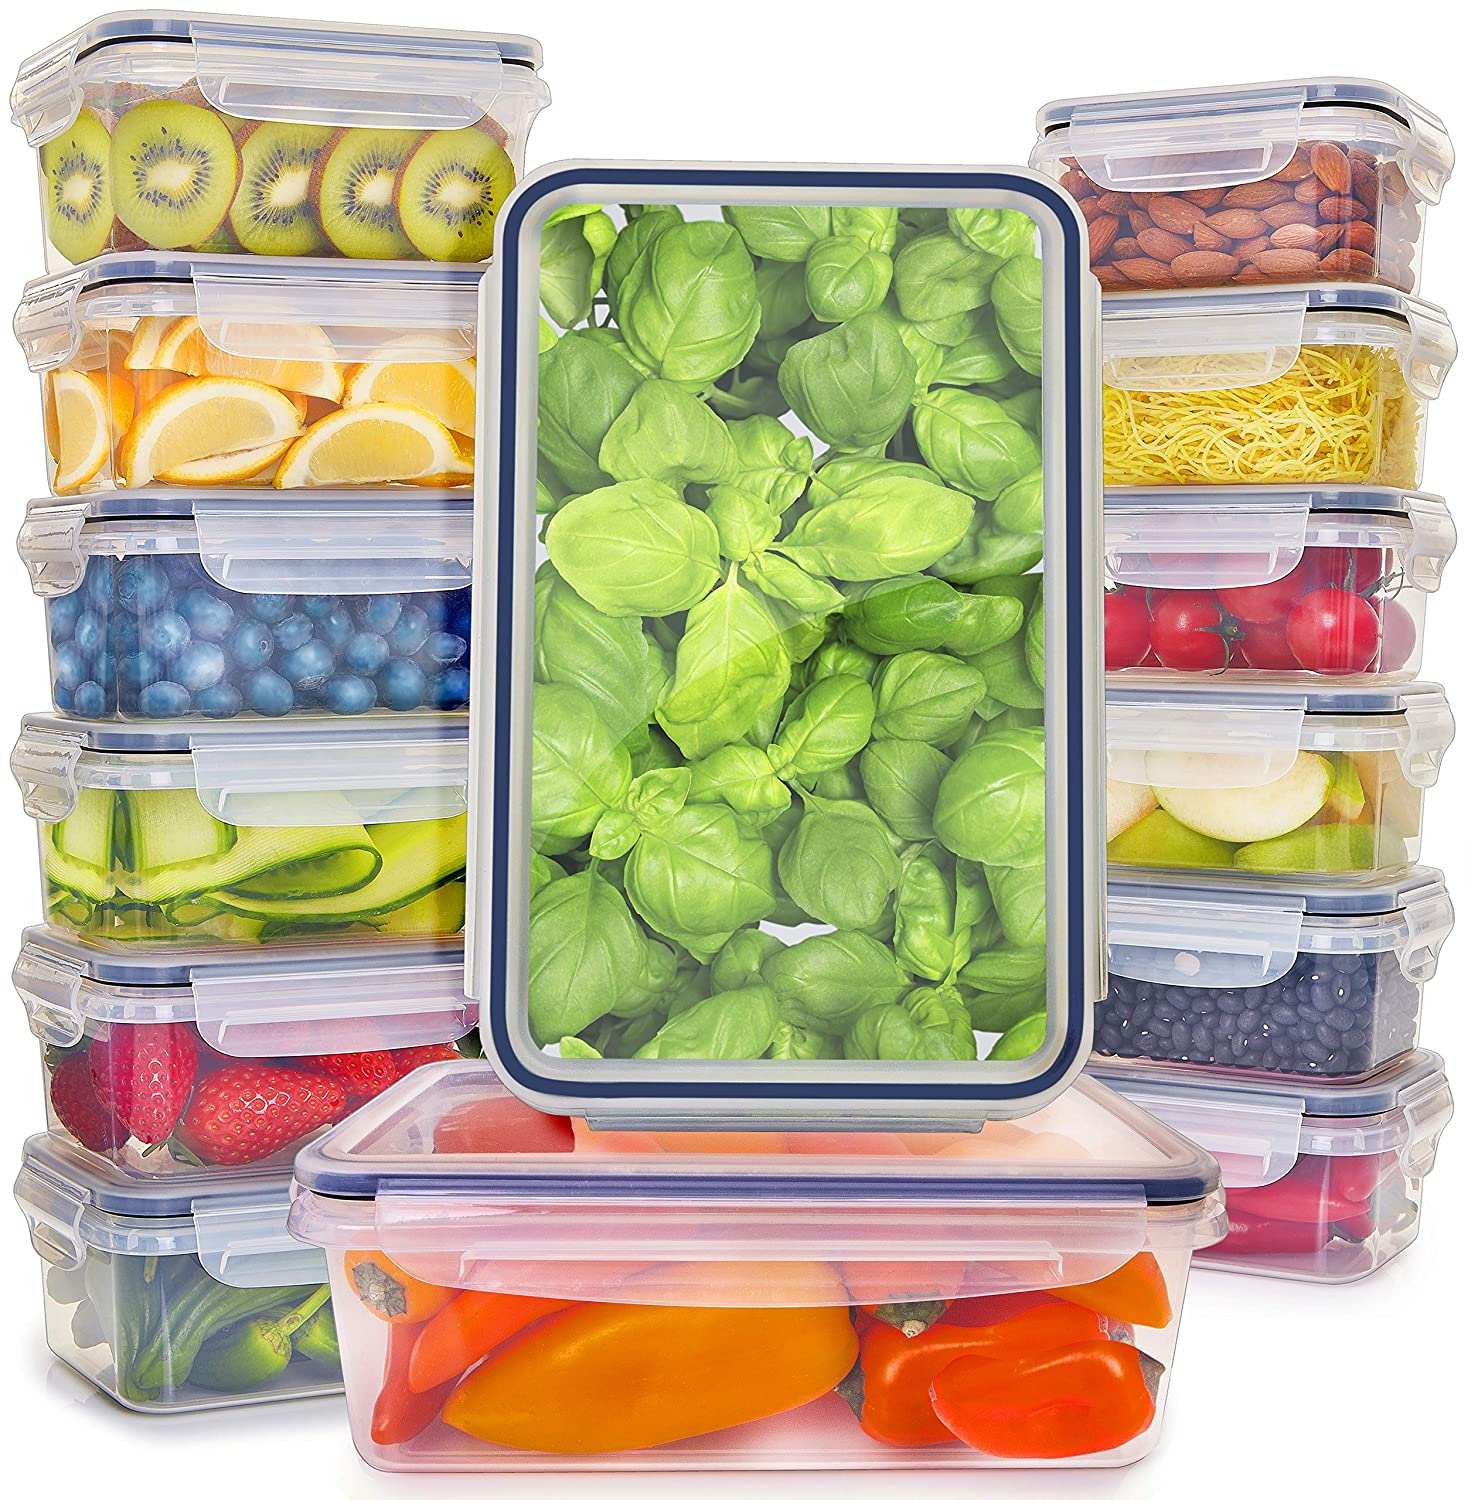 Food Storage Containers with Lids - Plastic Food Containers with Lids - Plastic Containers with Lids BPA Free - Leftover Food Containers - Airtight